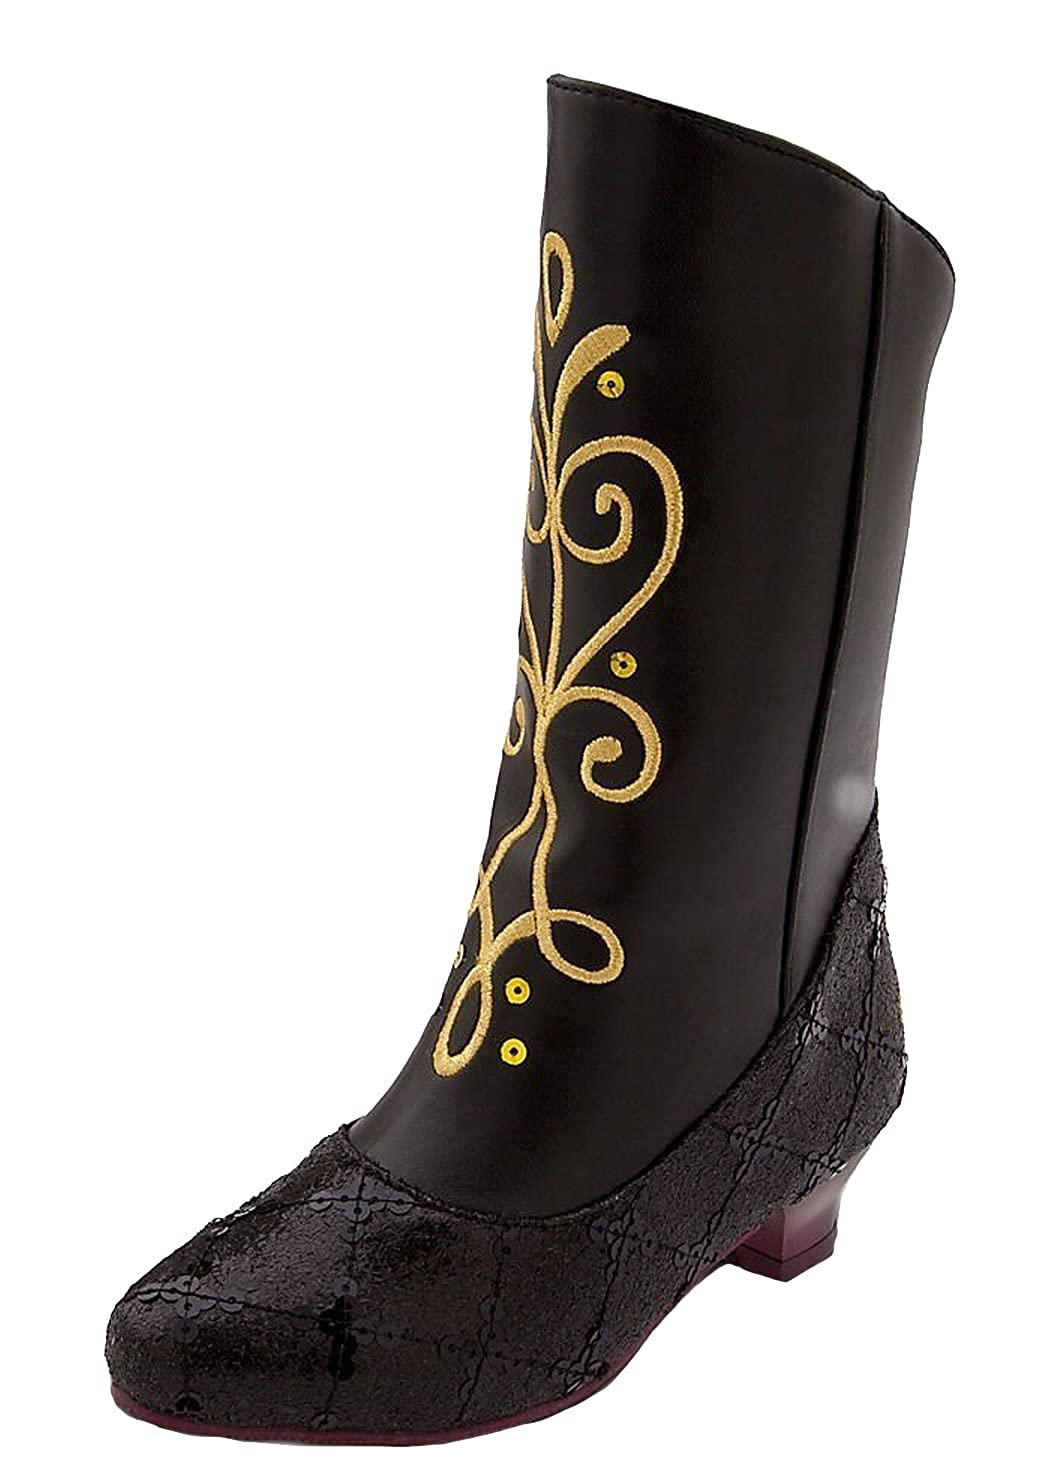 Disney Store Frozen Anna Boots for Girls Size 13 - 1